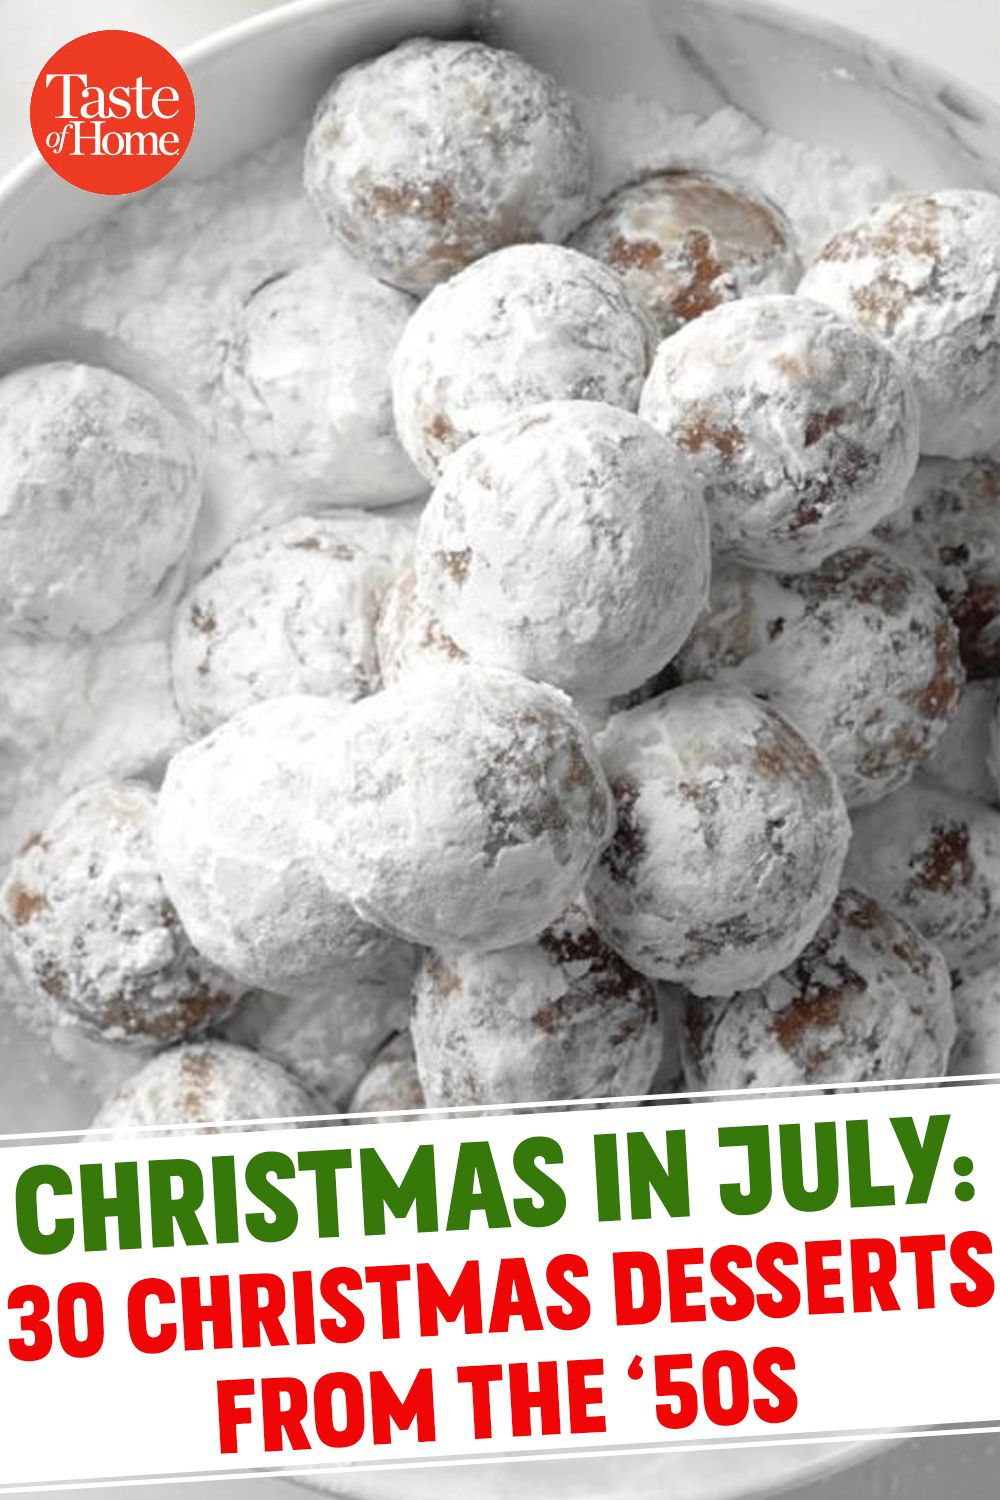 Taste Of Home Christmas 2020 1950s Christmas Desserts to Bring Back This Holiday Season in 2020